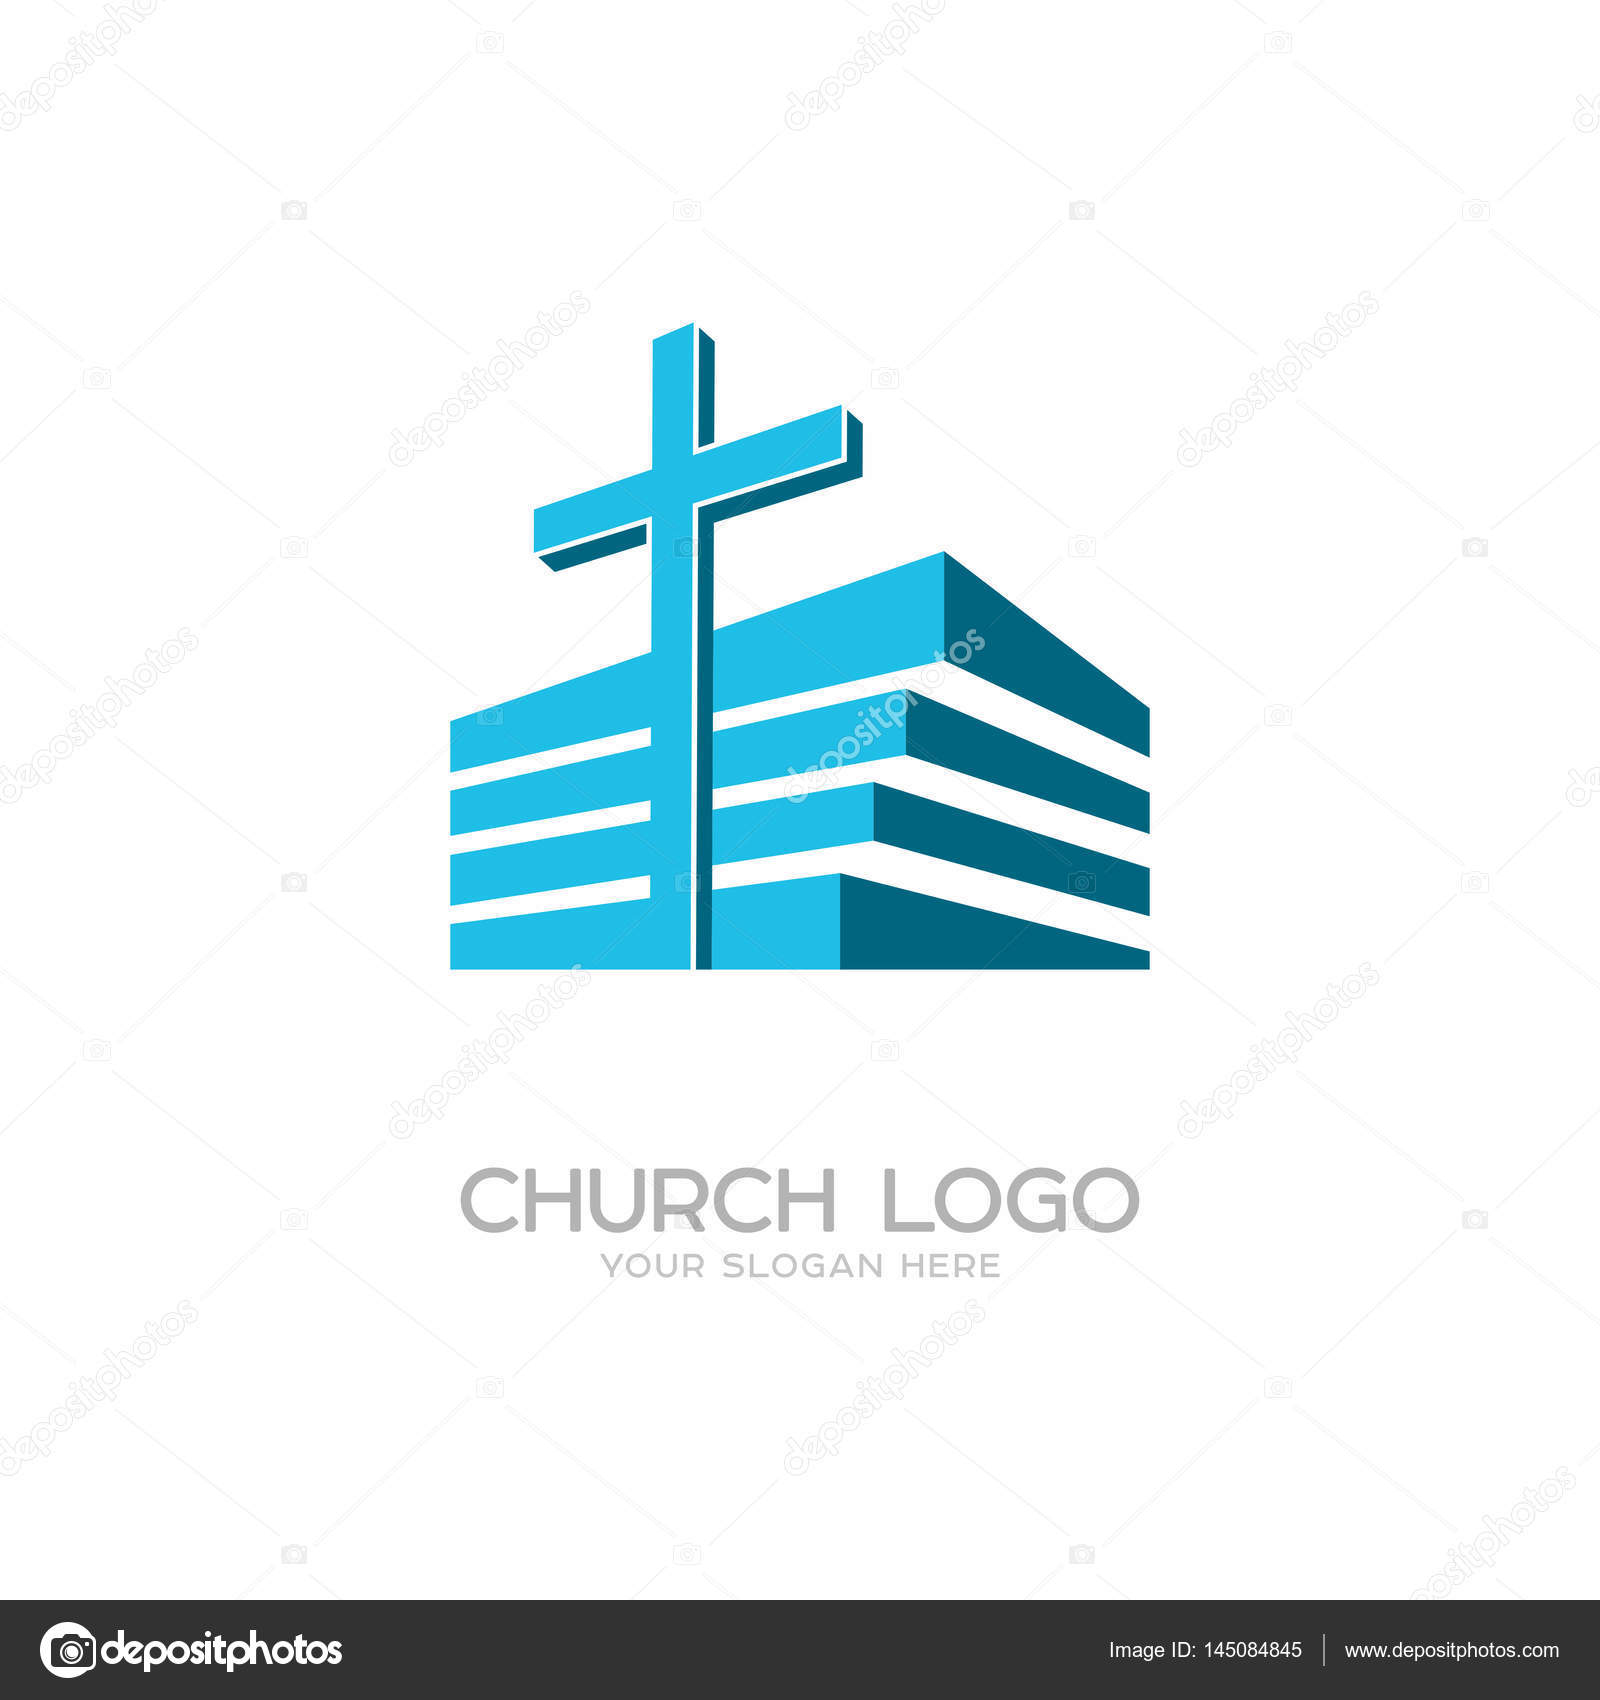 Church logo christian symbols cross of the lord and savior jesus christian symbols cross of the lord and savior jesus christ the biocorpaavc Image collections